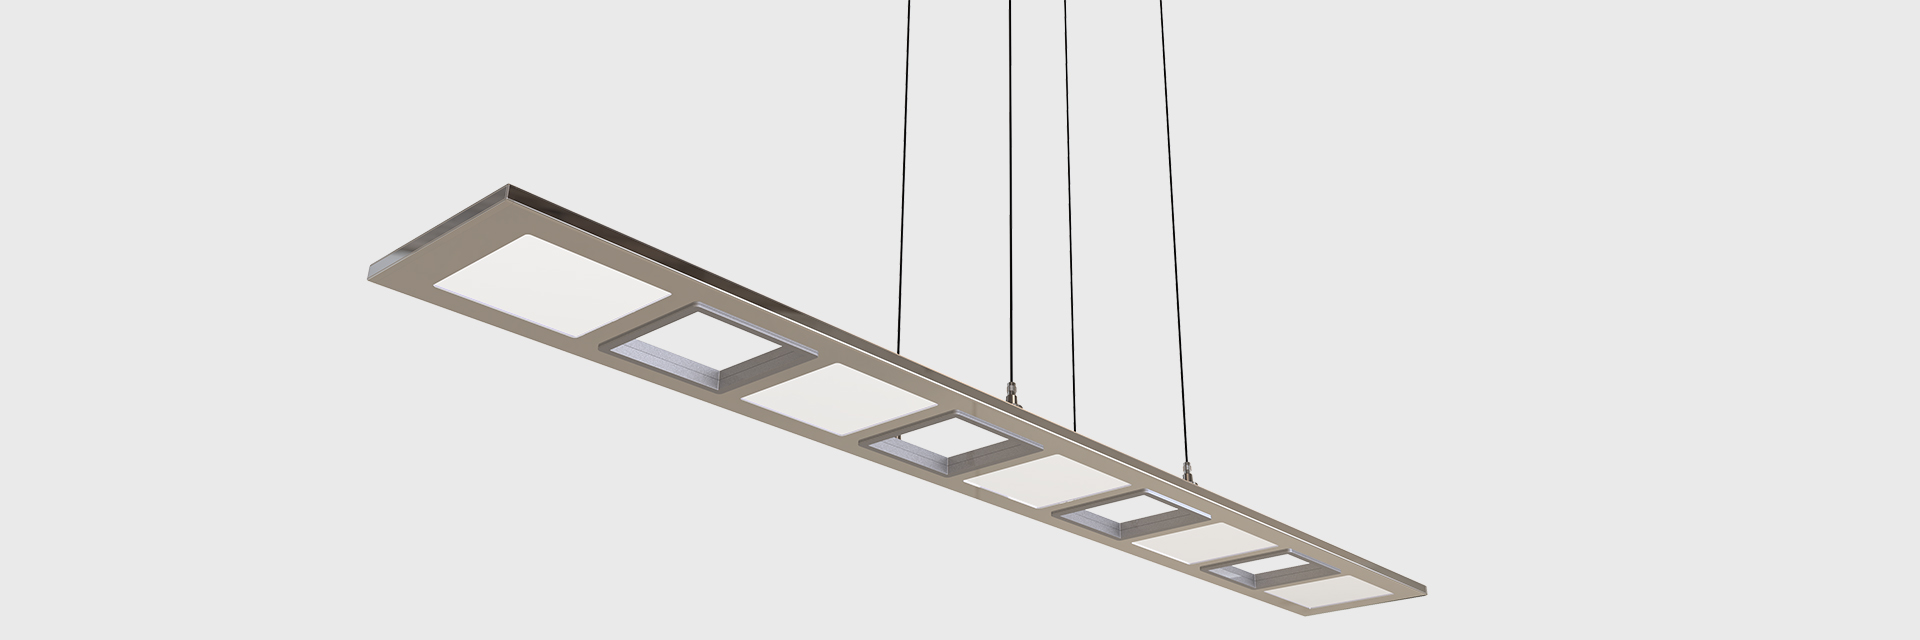 Pendant Lighting Column Led Suspended Series Zentem